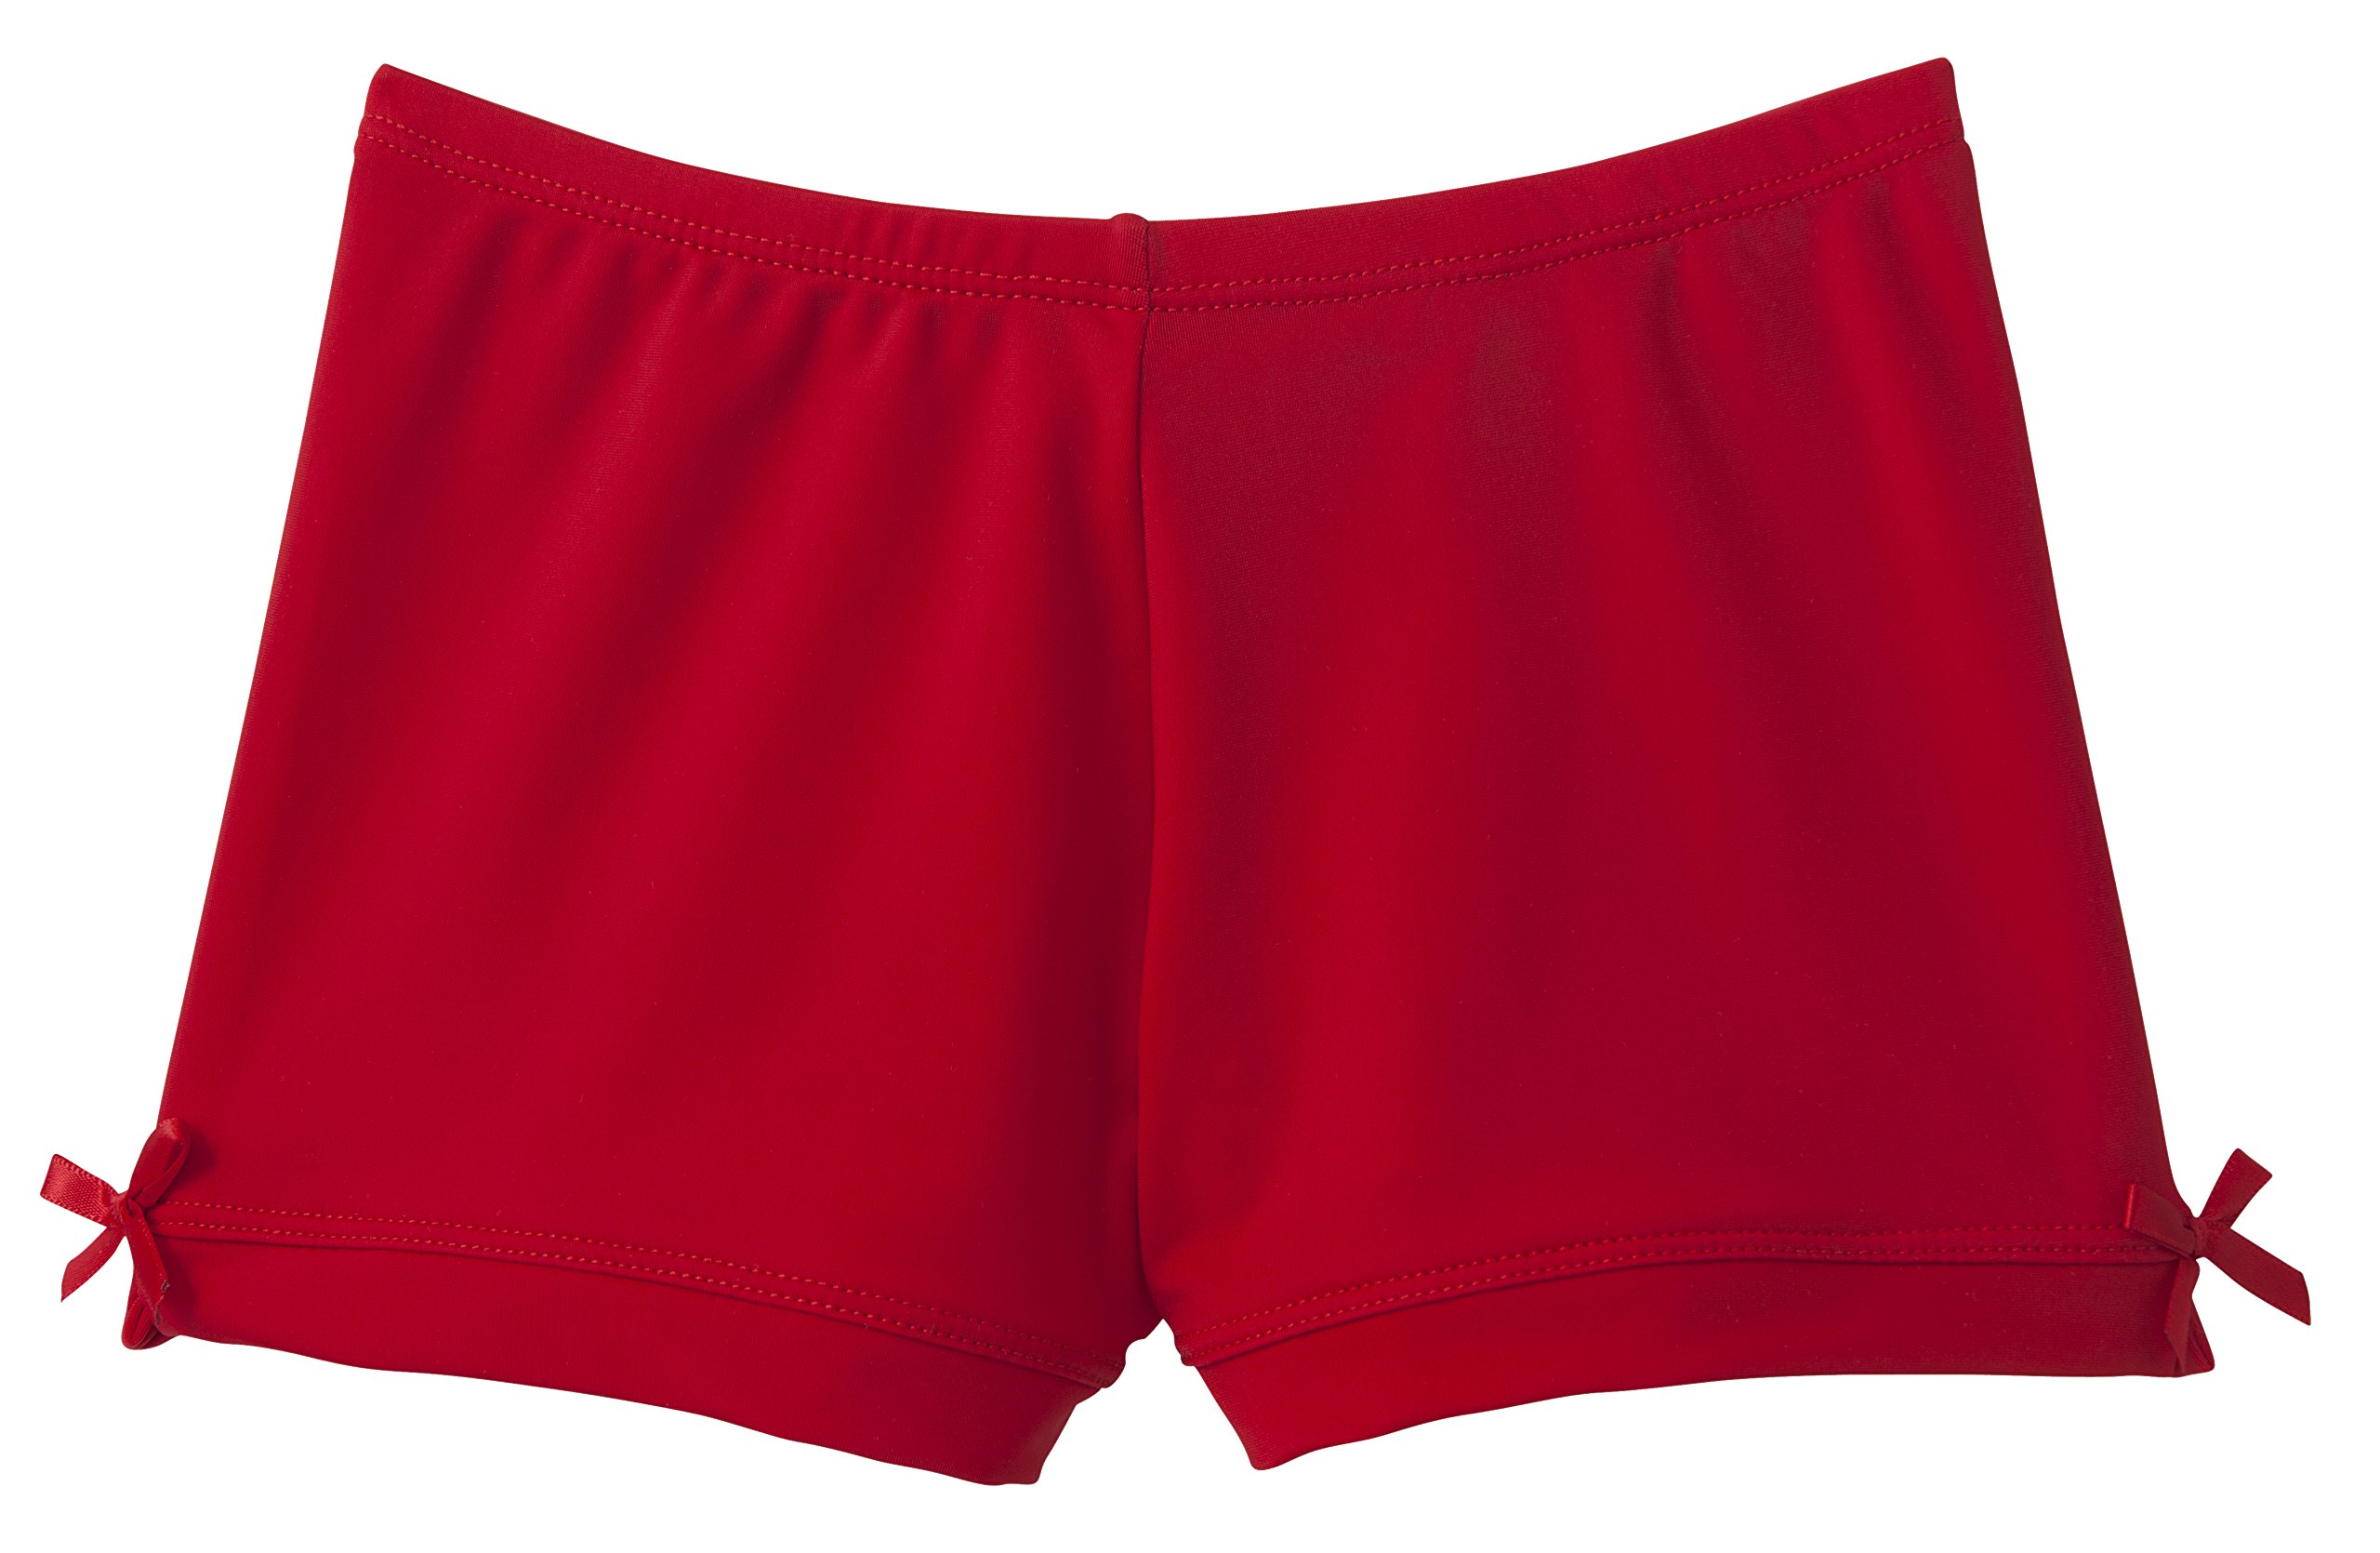 Monkeybar Buddies Worry-Free Girl's Playground Shorts, Nylon and Spandex Blend, Size 4T, Red by Monkeybar Buddies